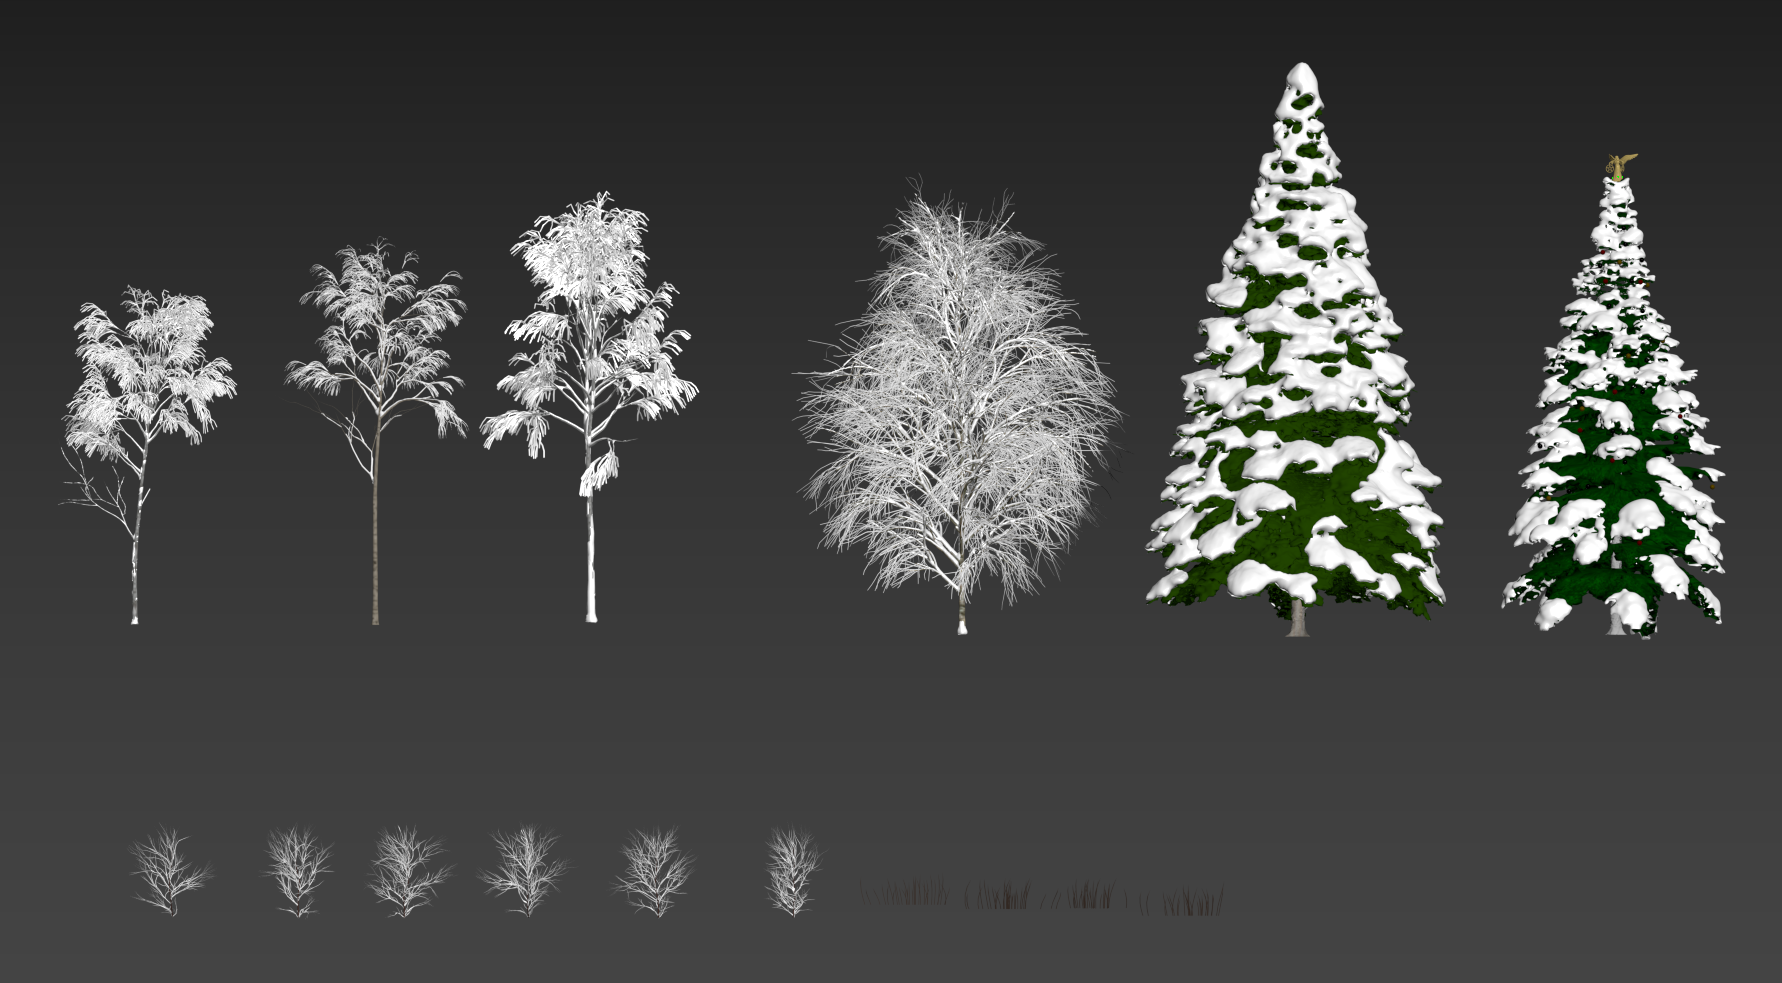 Tree and plant models